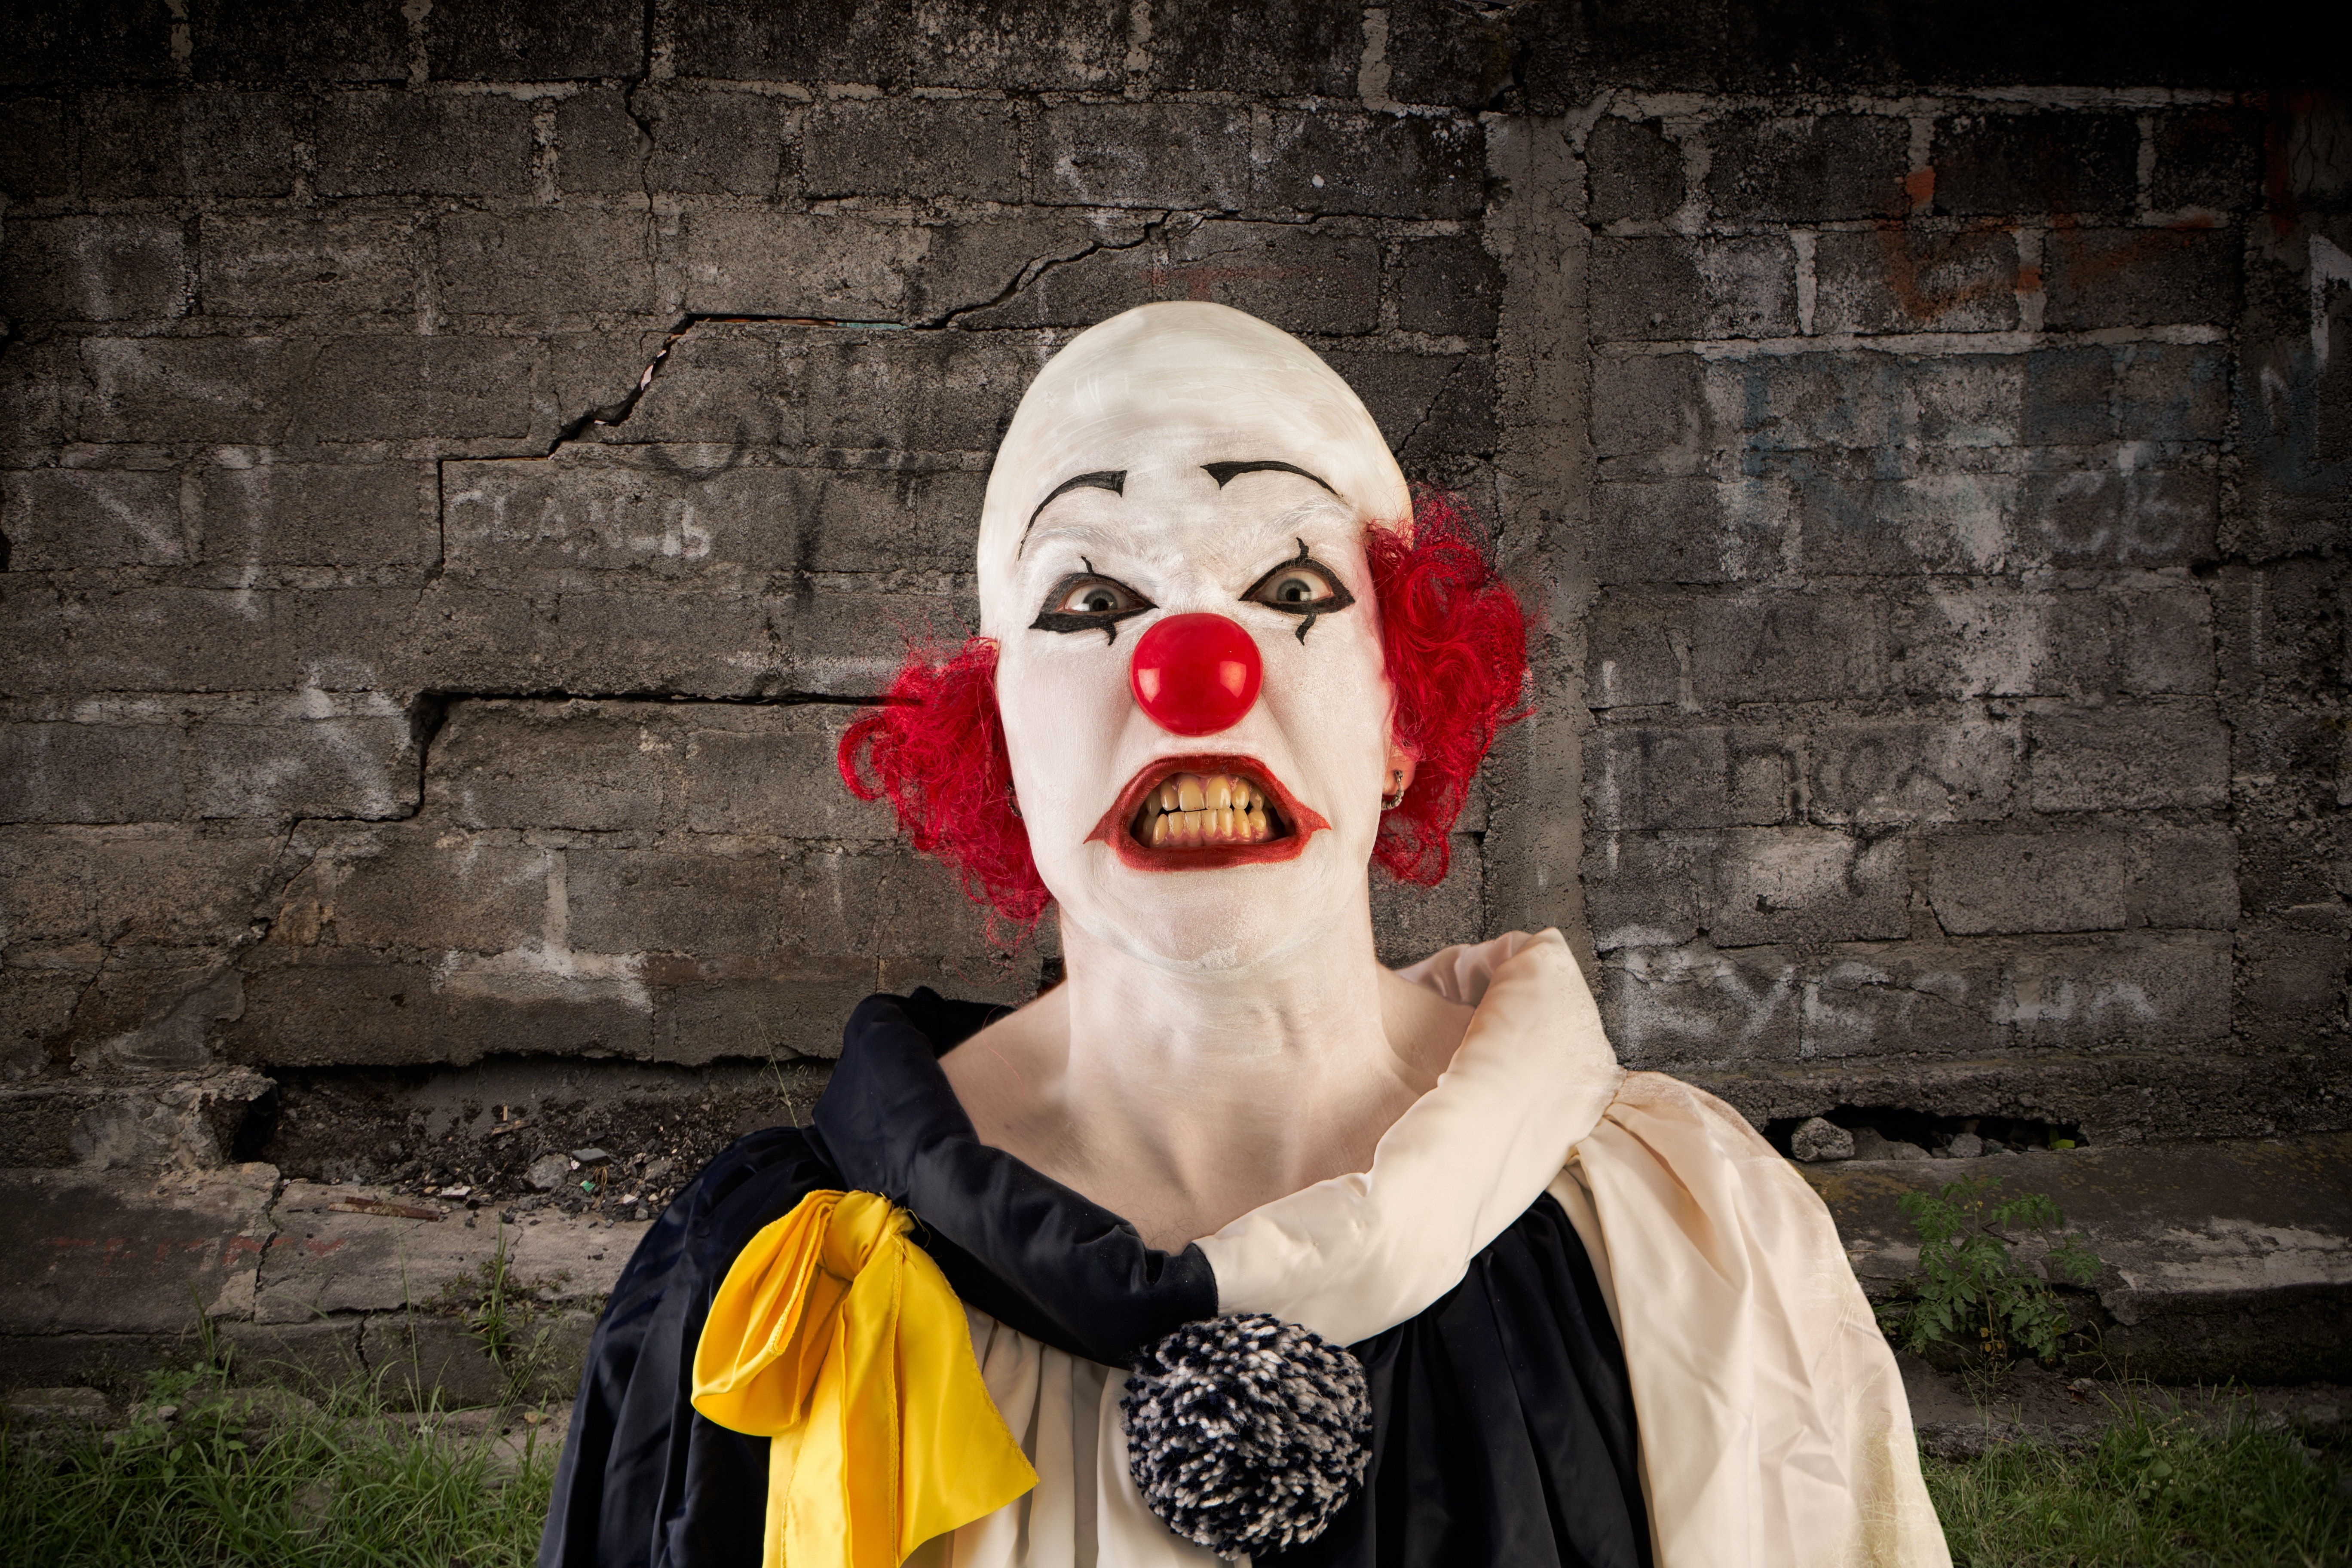 Tomorrow 161: Camping with Pennywise